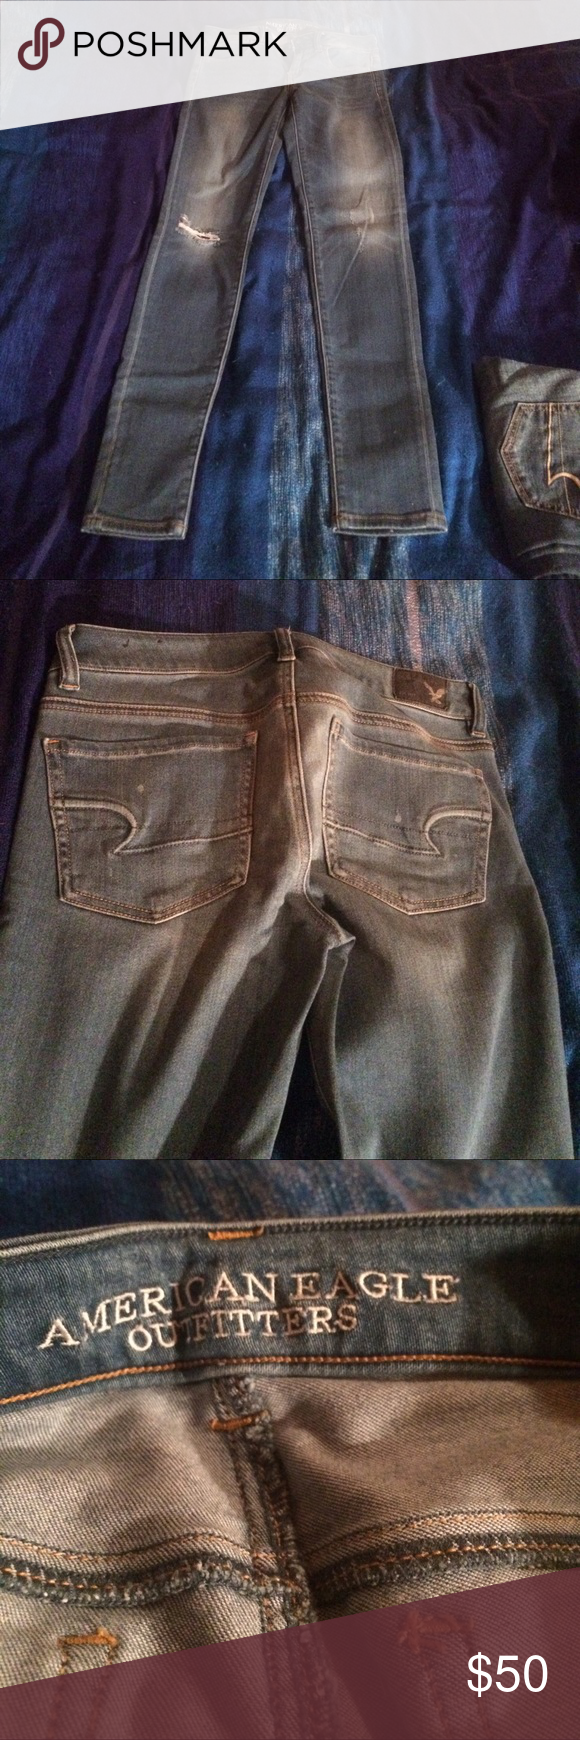 American Eagle jeggings size 4 American Eagle Outfitters size 4 jeggings. Light blue color with lighter distressing on the front and back. Also has distressing on the front knee areas. Like new condition only worn a few times. Only selling because they no longer fit. These jeans are great. American Eagle Outfitters Jeans Skinny